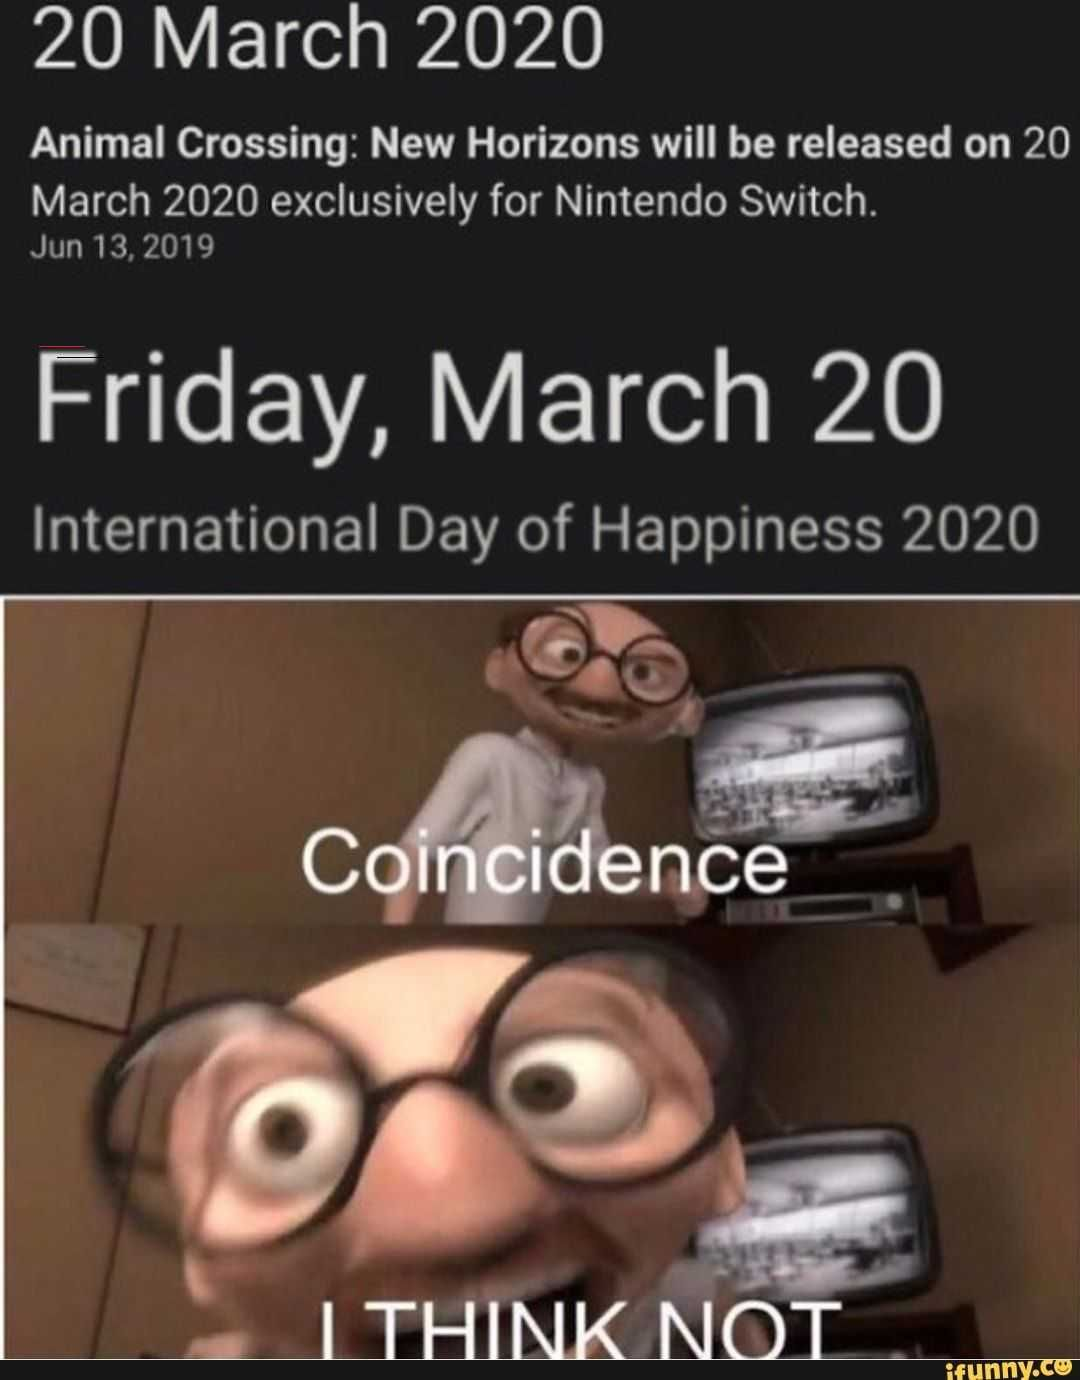 Picture Memes J0mt3bf97 1 Comment Ifunny Freitag13lustig 20 March 2020 Animal Crossing New Horizons Will Be Released On 20 March 2020 Exclusively For N